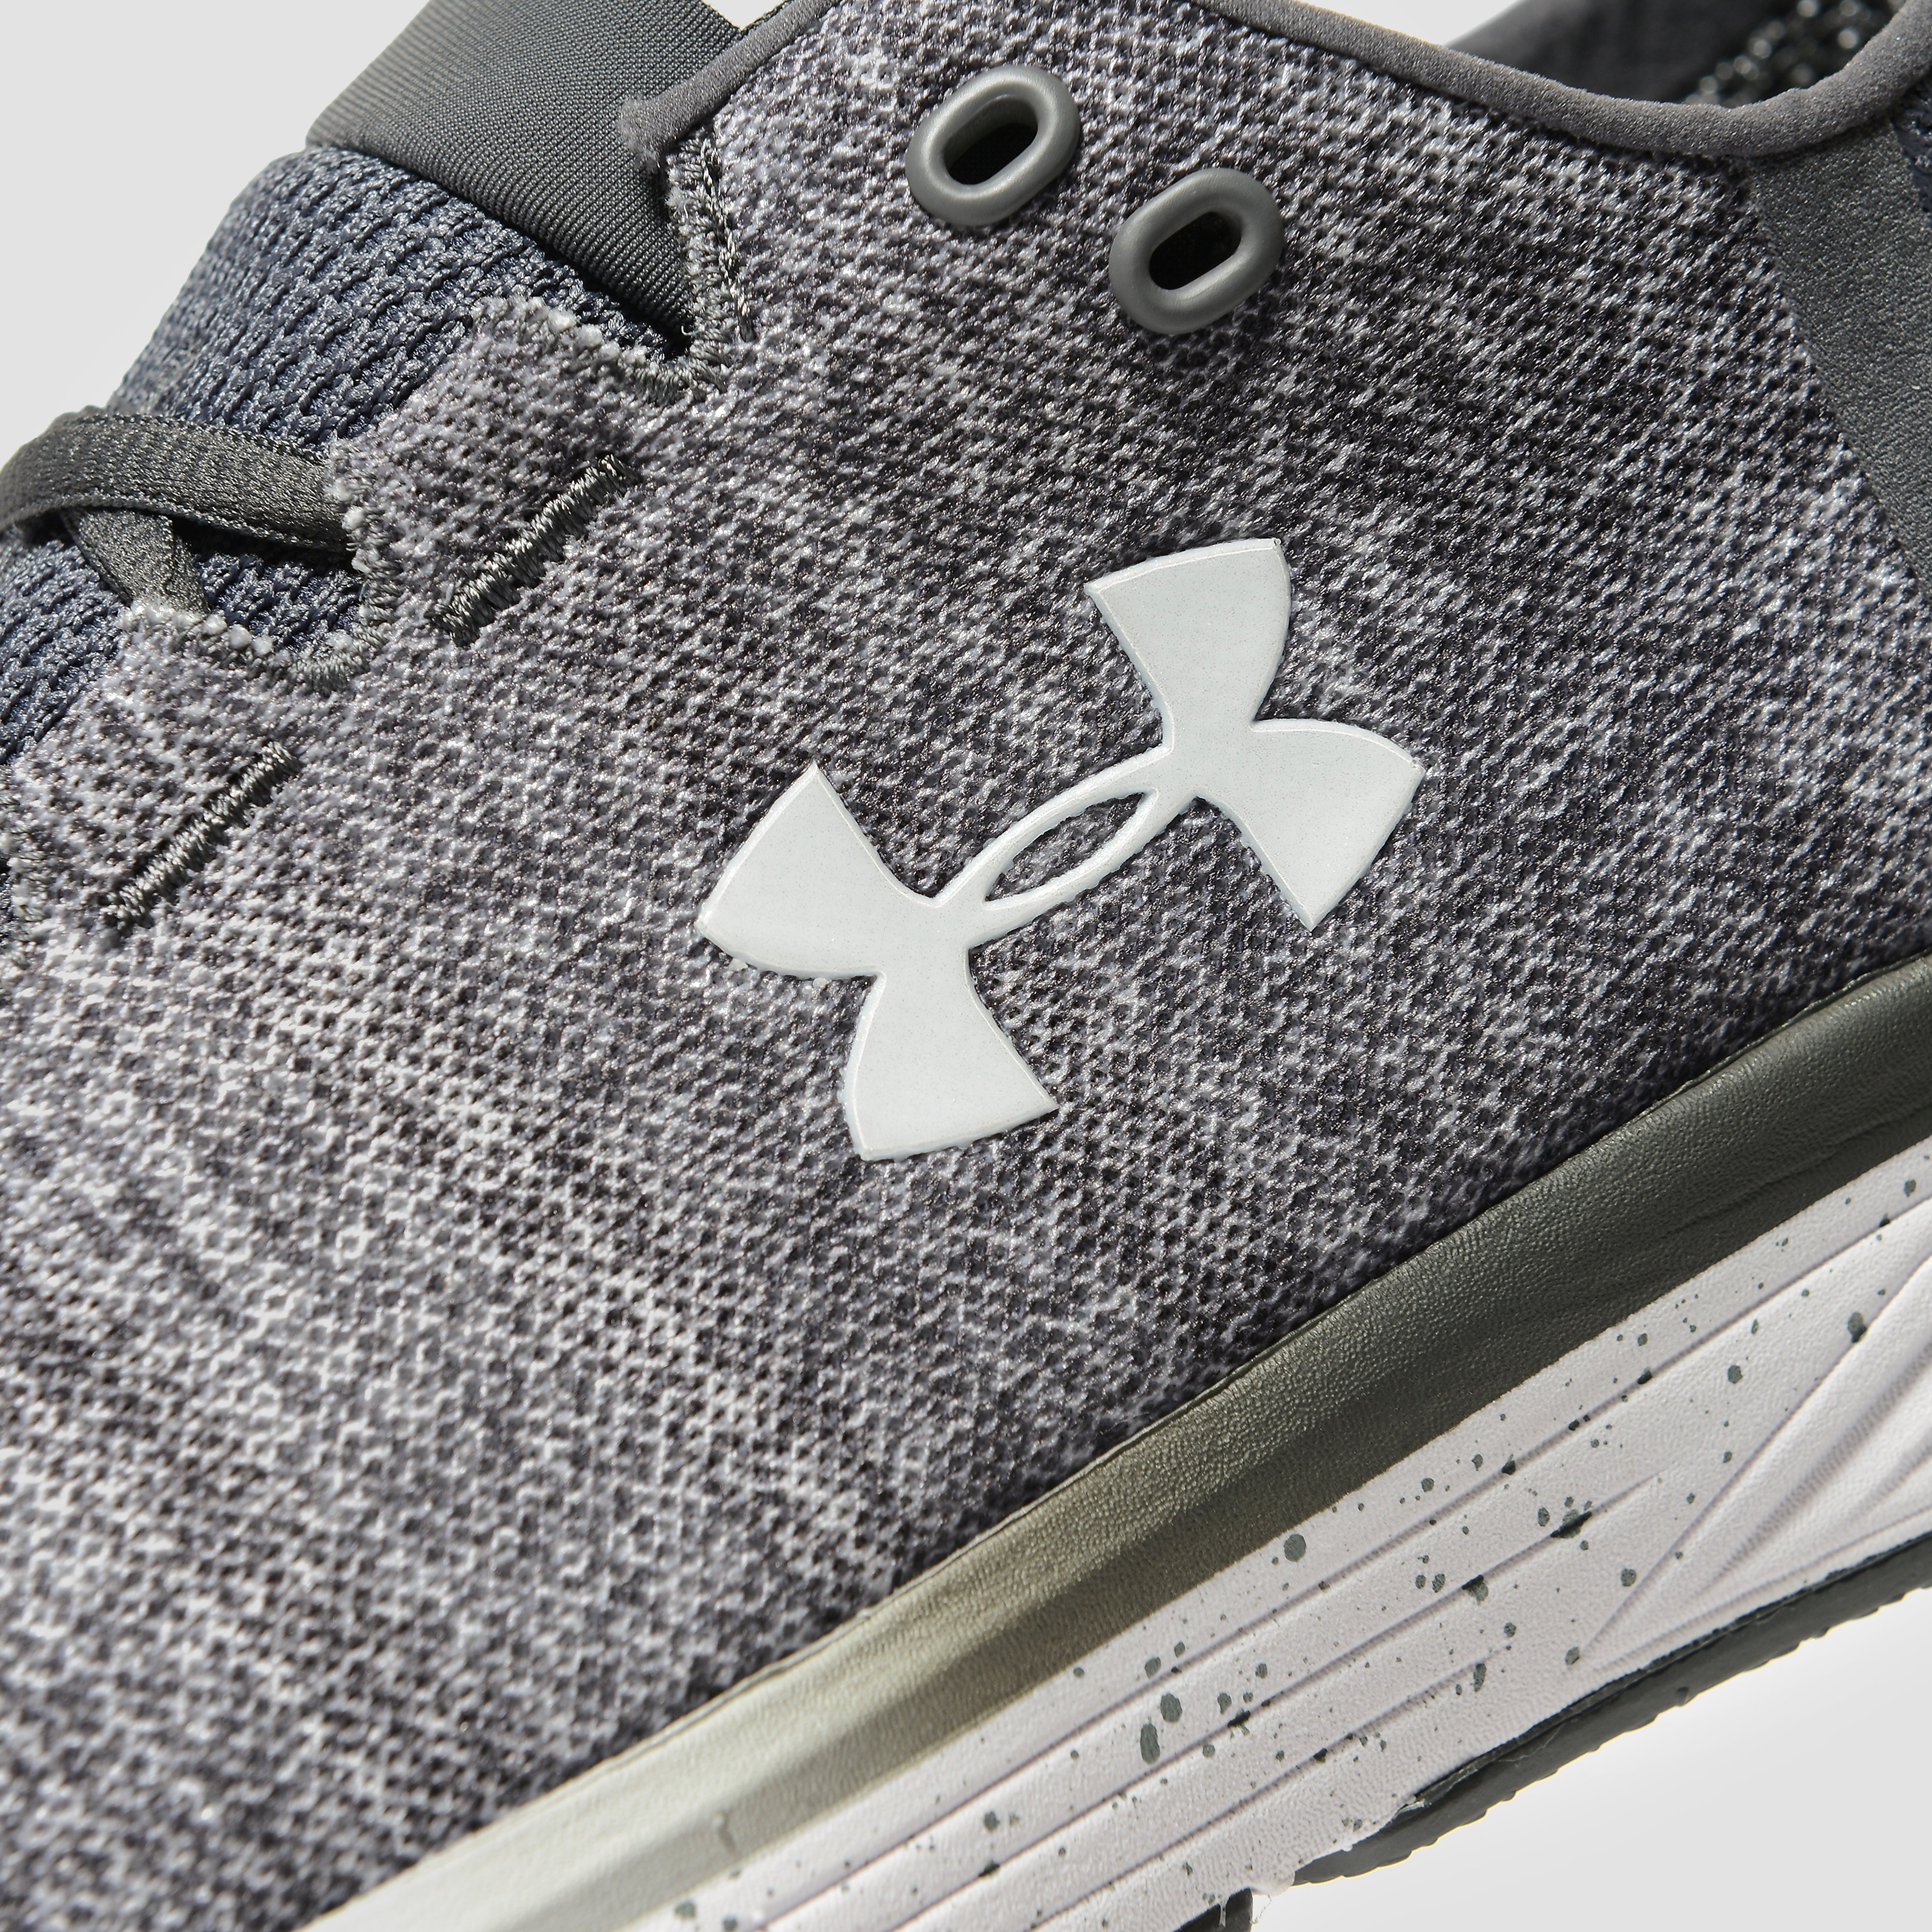 Under Armour Bandit 3 Men's Running Shoes